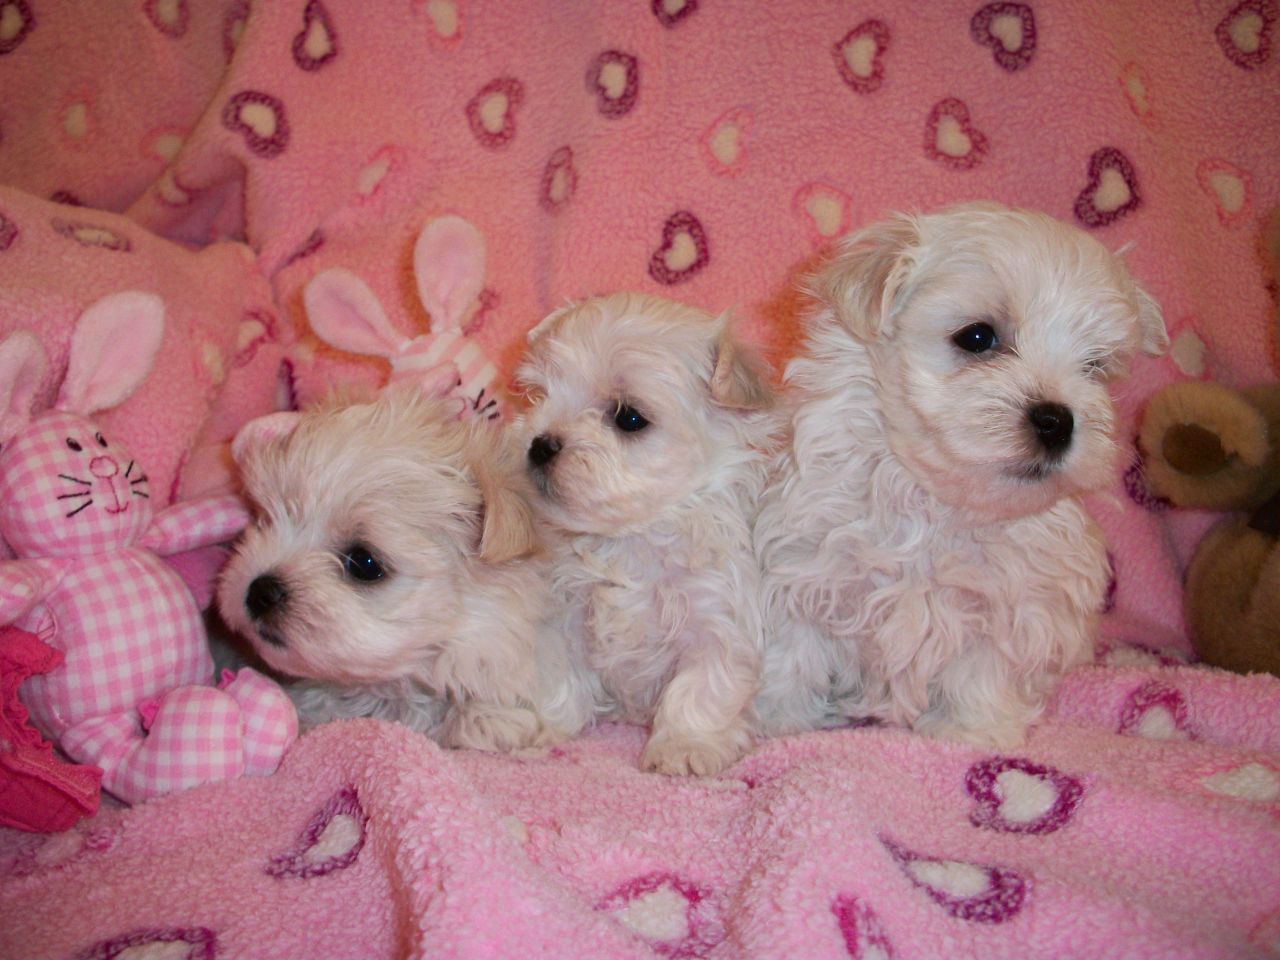 Teacup Maltese puppies for sale. Maltese puppy, Teacup